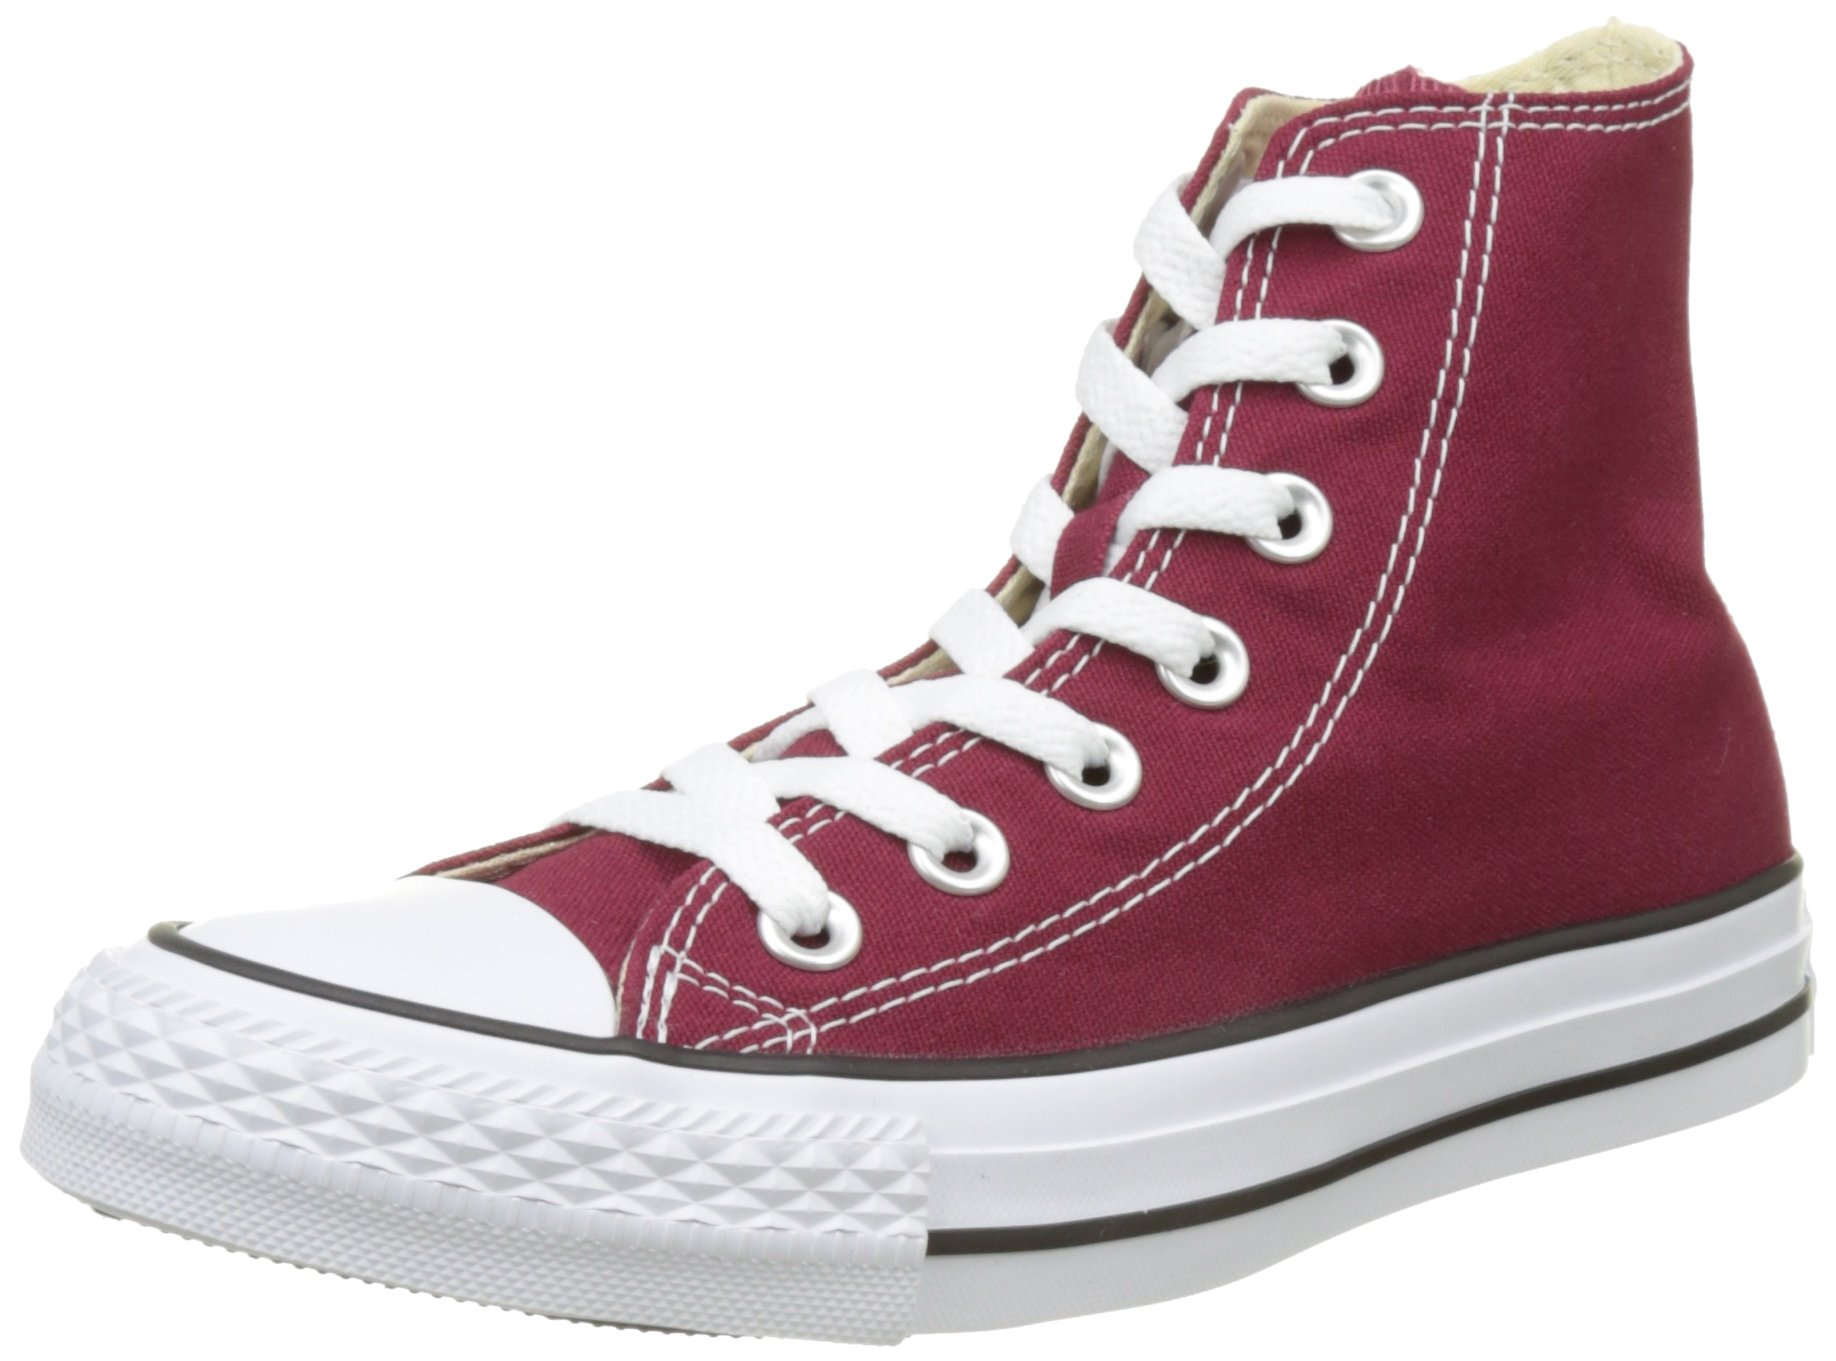 Converse Womens Ctas Hi High Top Trainers Red Size 38 (5.5Men's/7.5 women's)